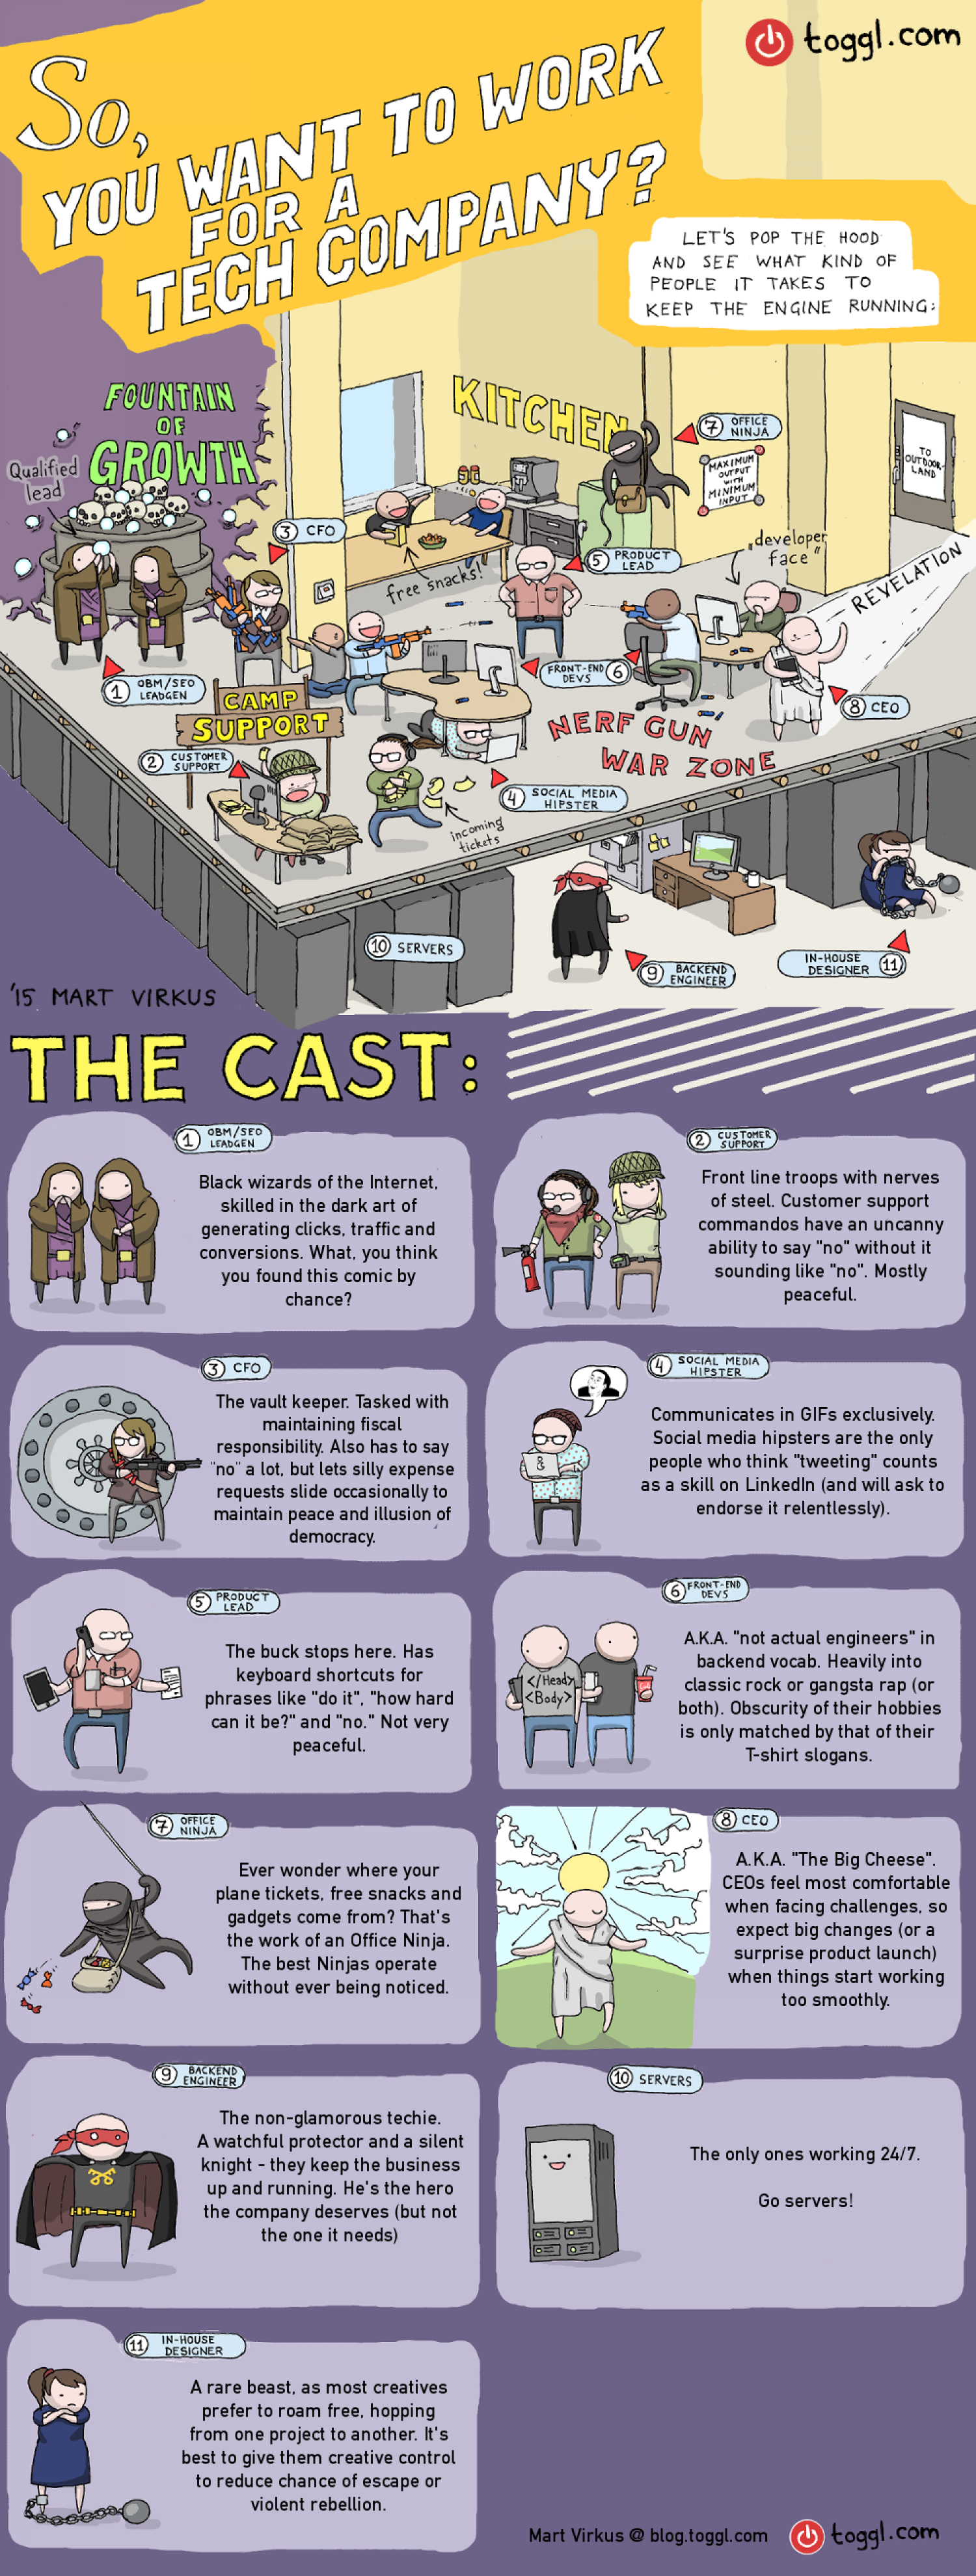 11 Types of Employees You Meet at a Tech Company Infographic